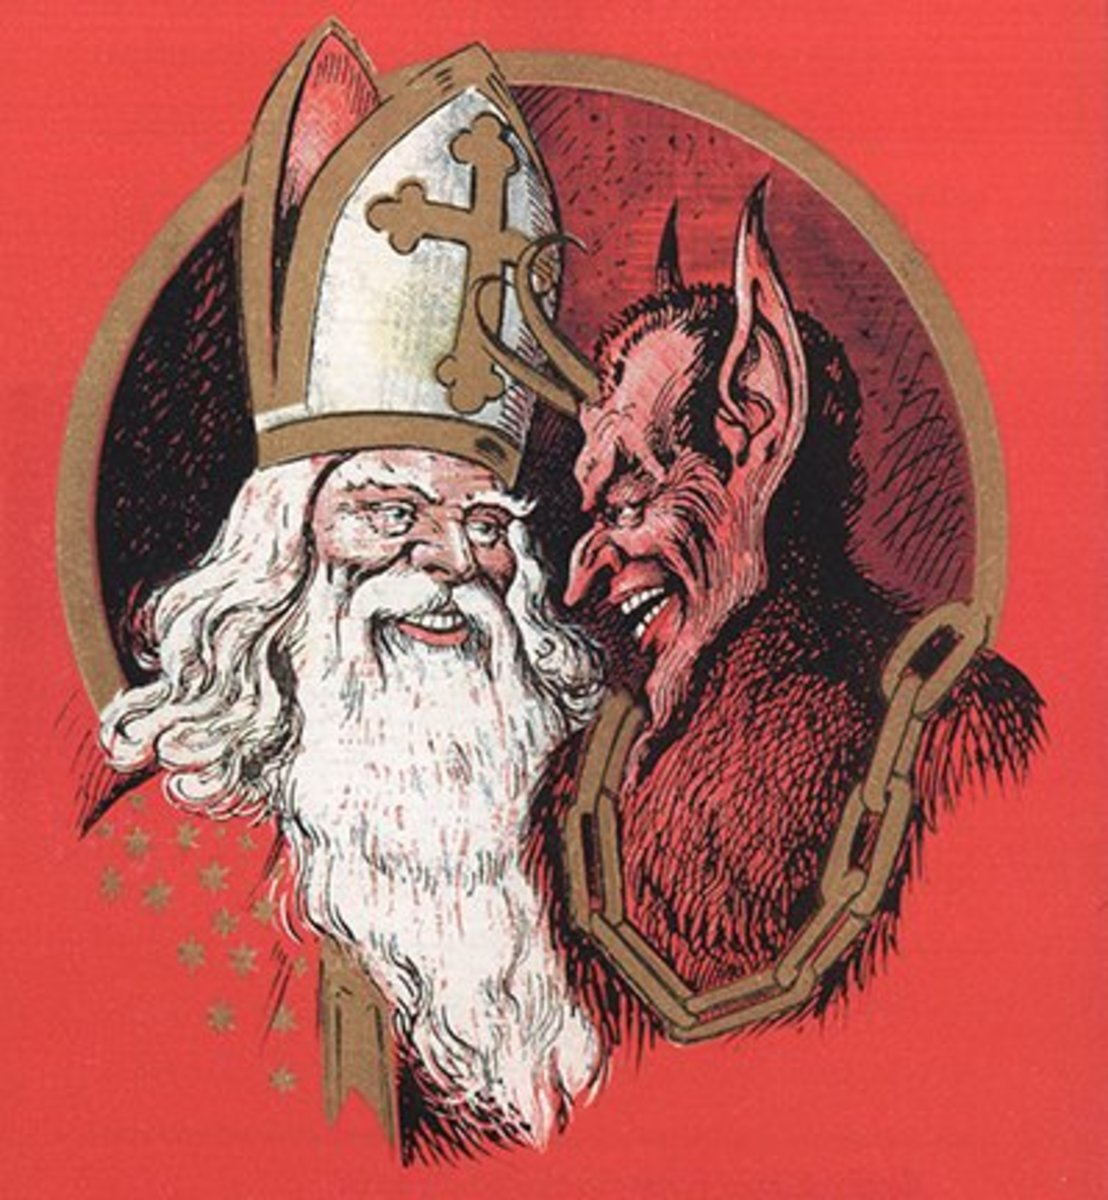 Austrian St Nicholas and Krampus c. 1900